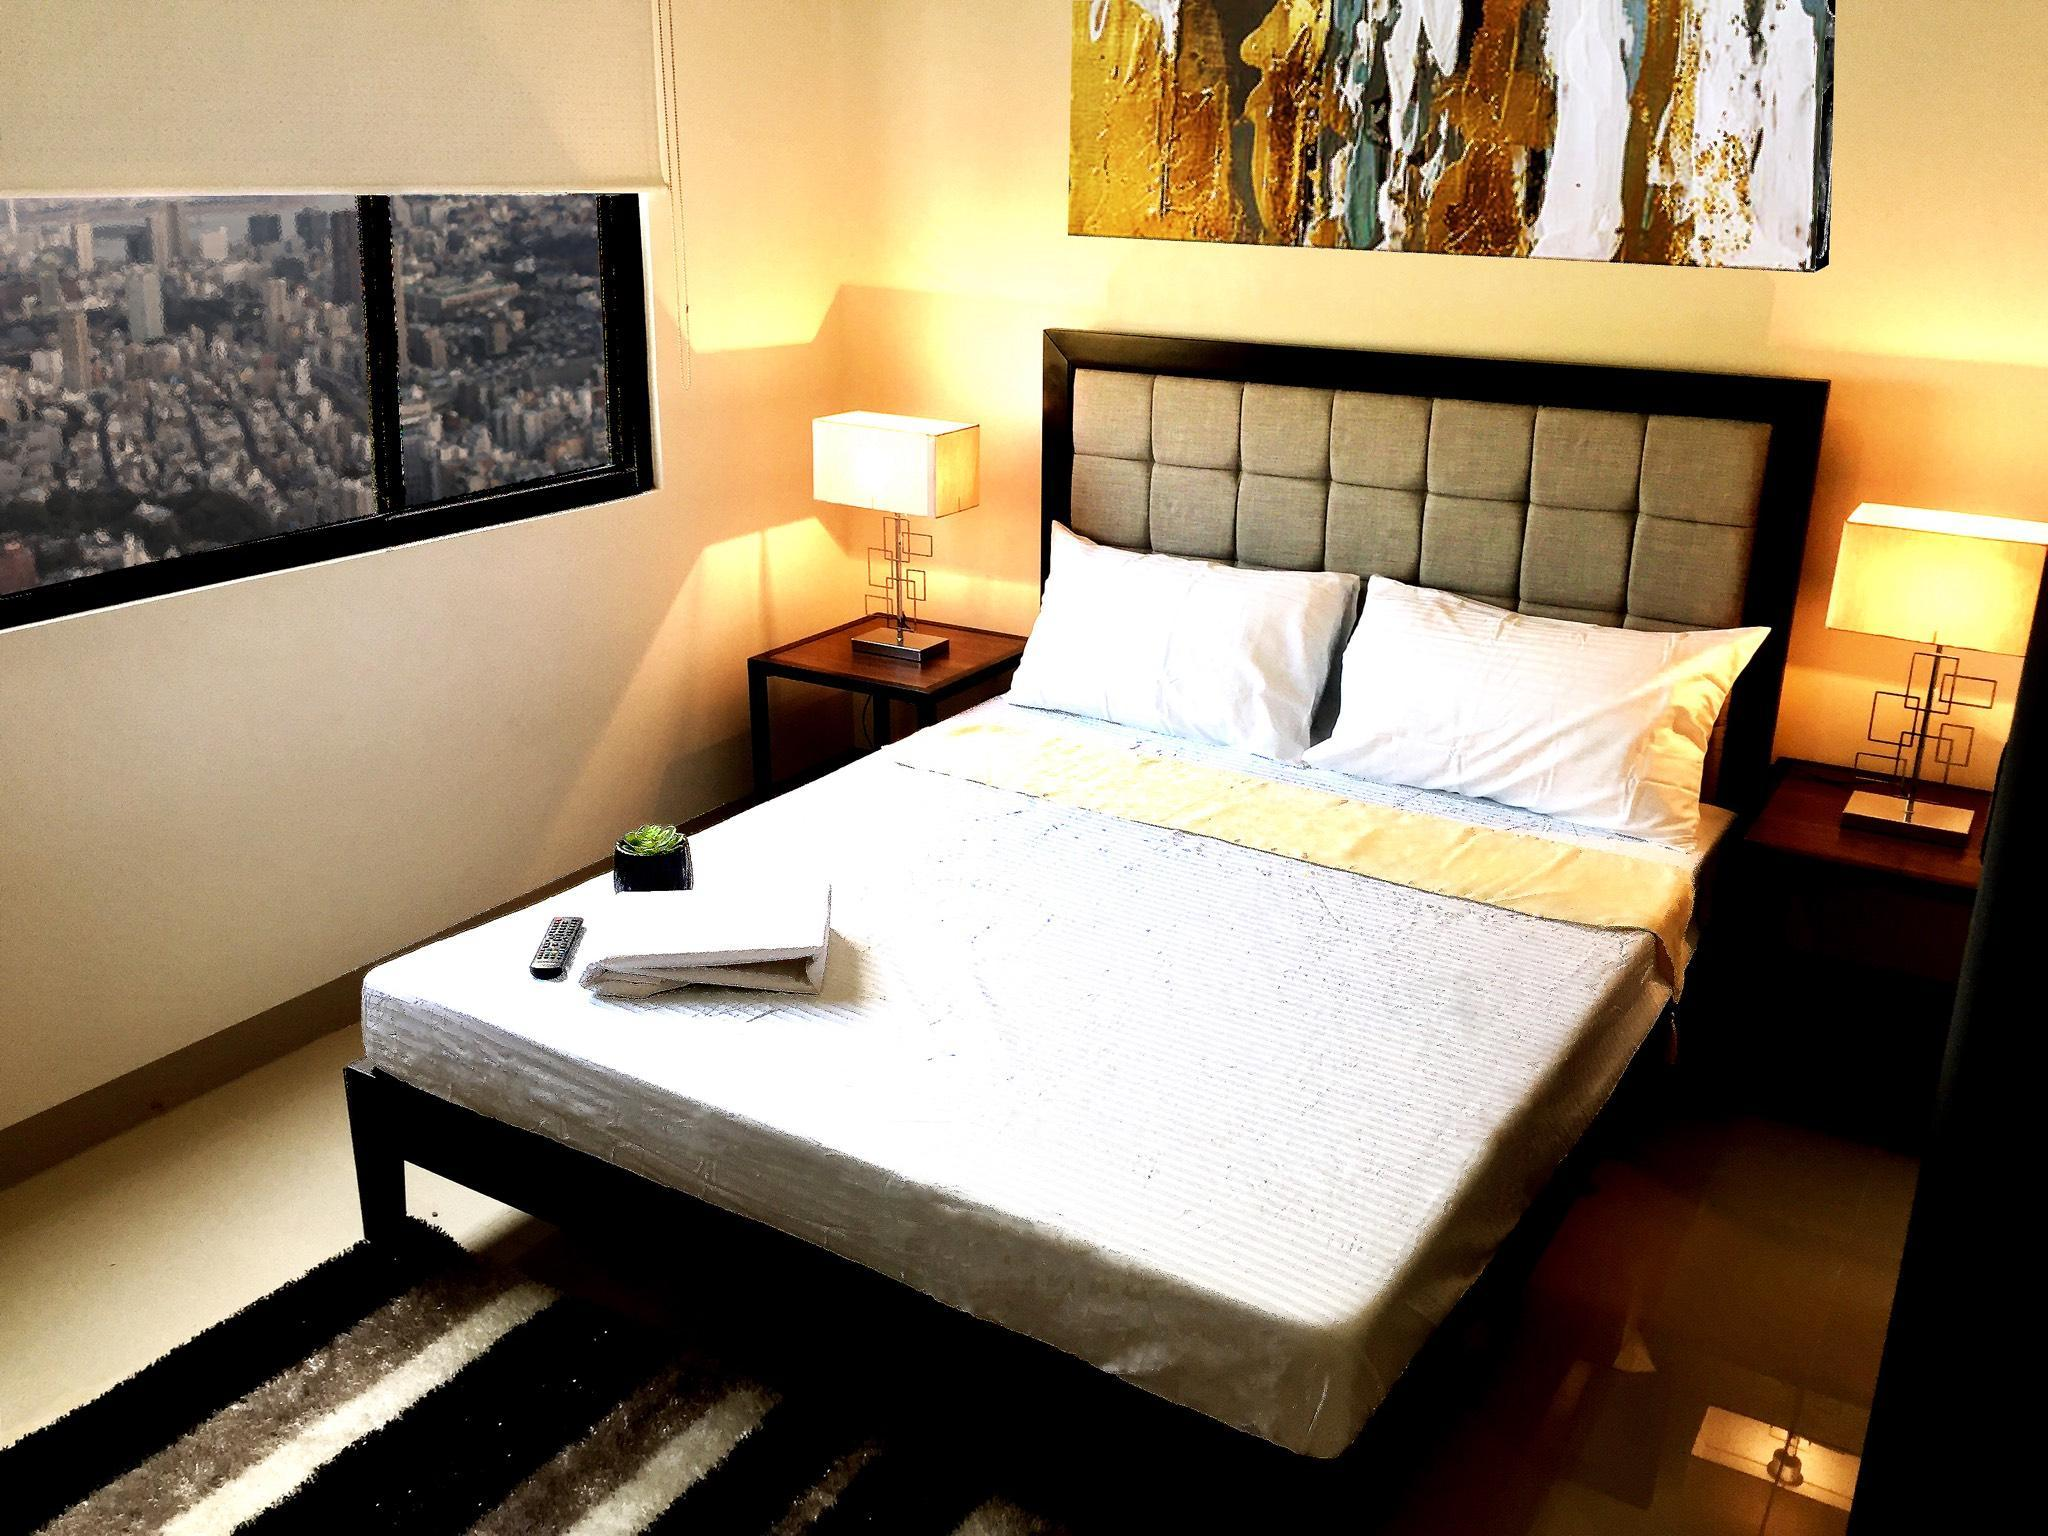 Cozy yet affordable studio unit w/ kitchen & etc. - Hotels Information/Map/Reviews/Reservation